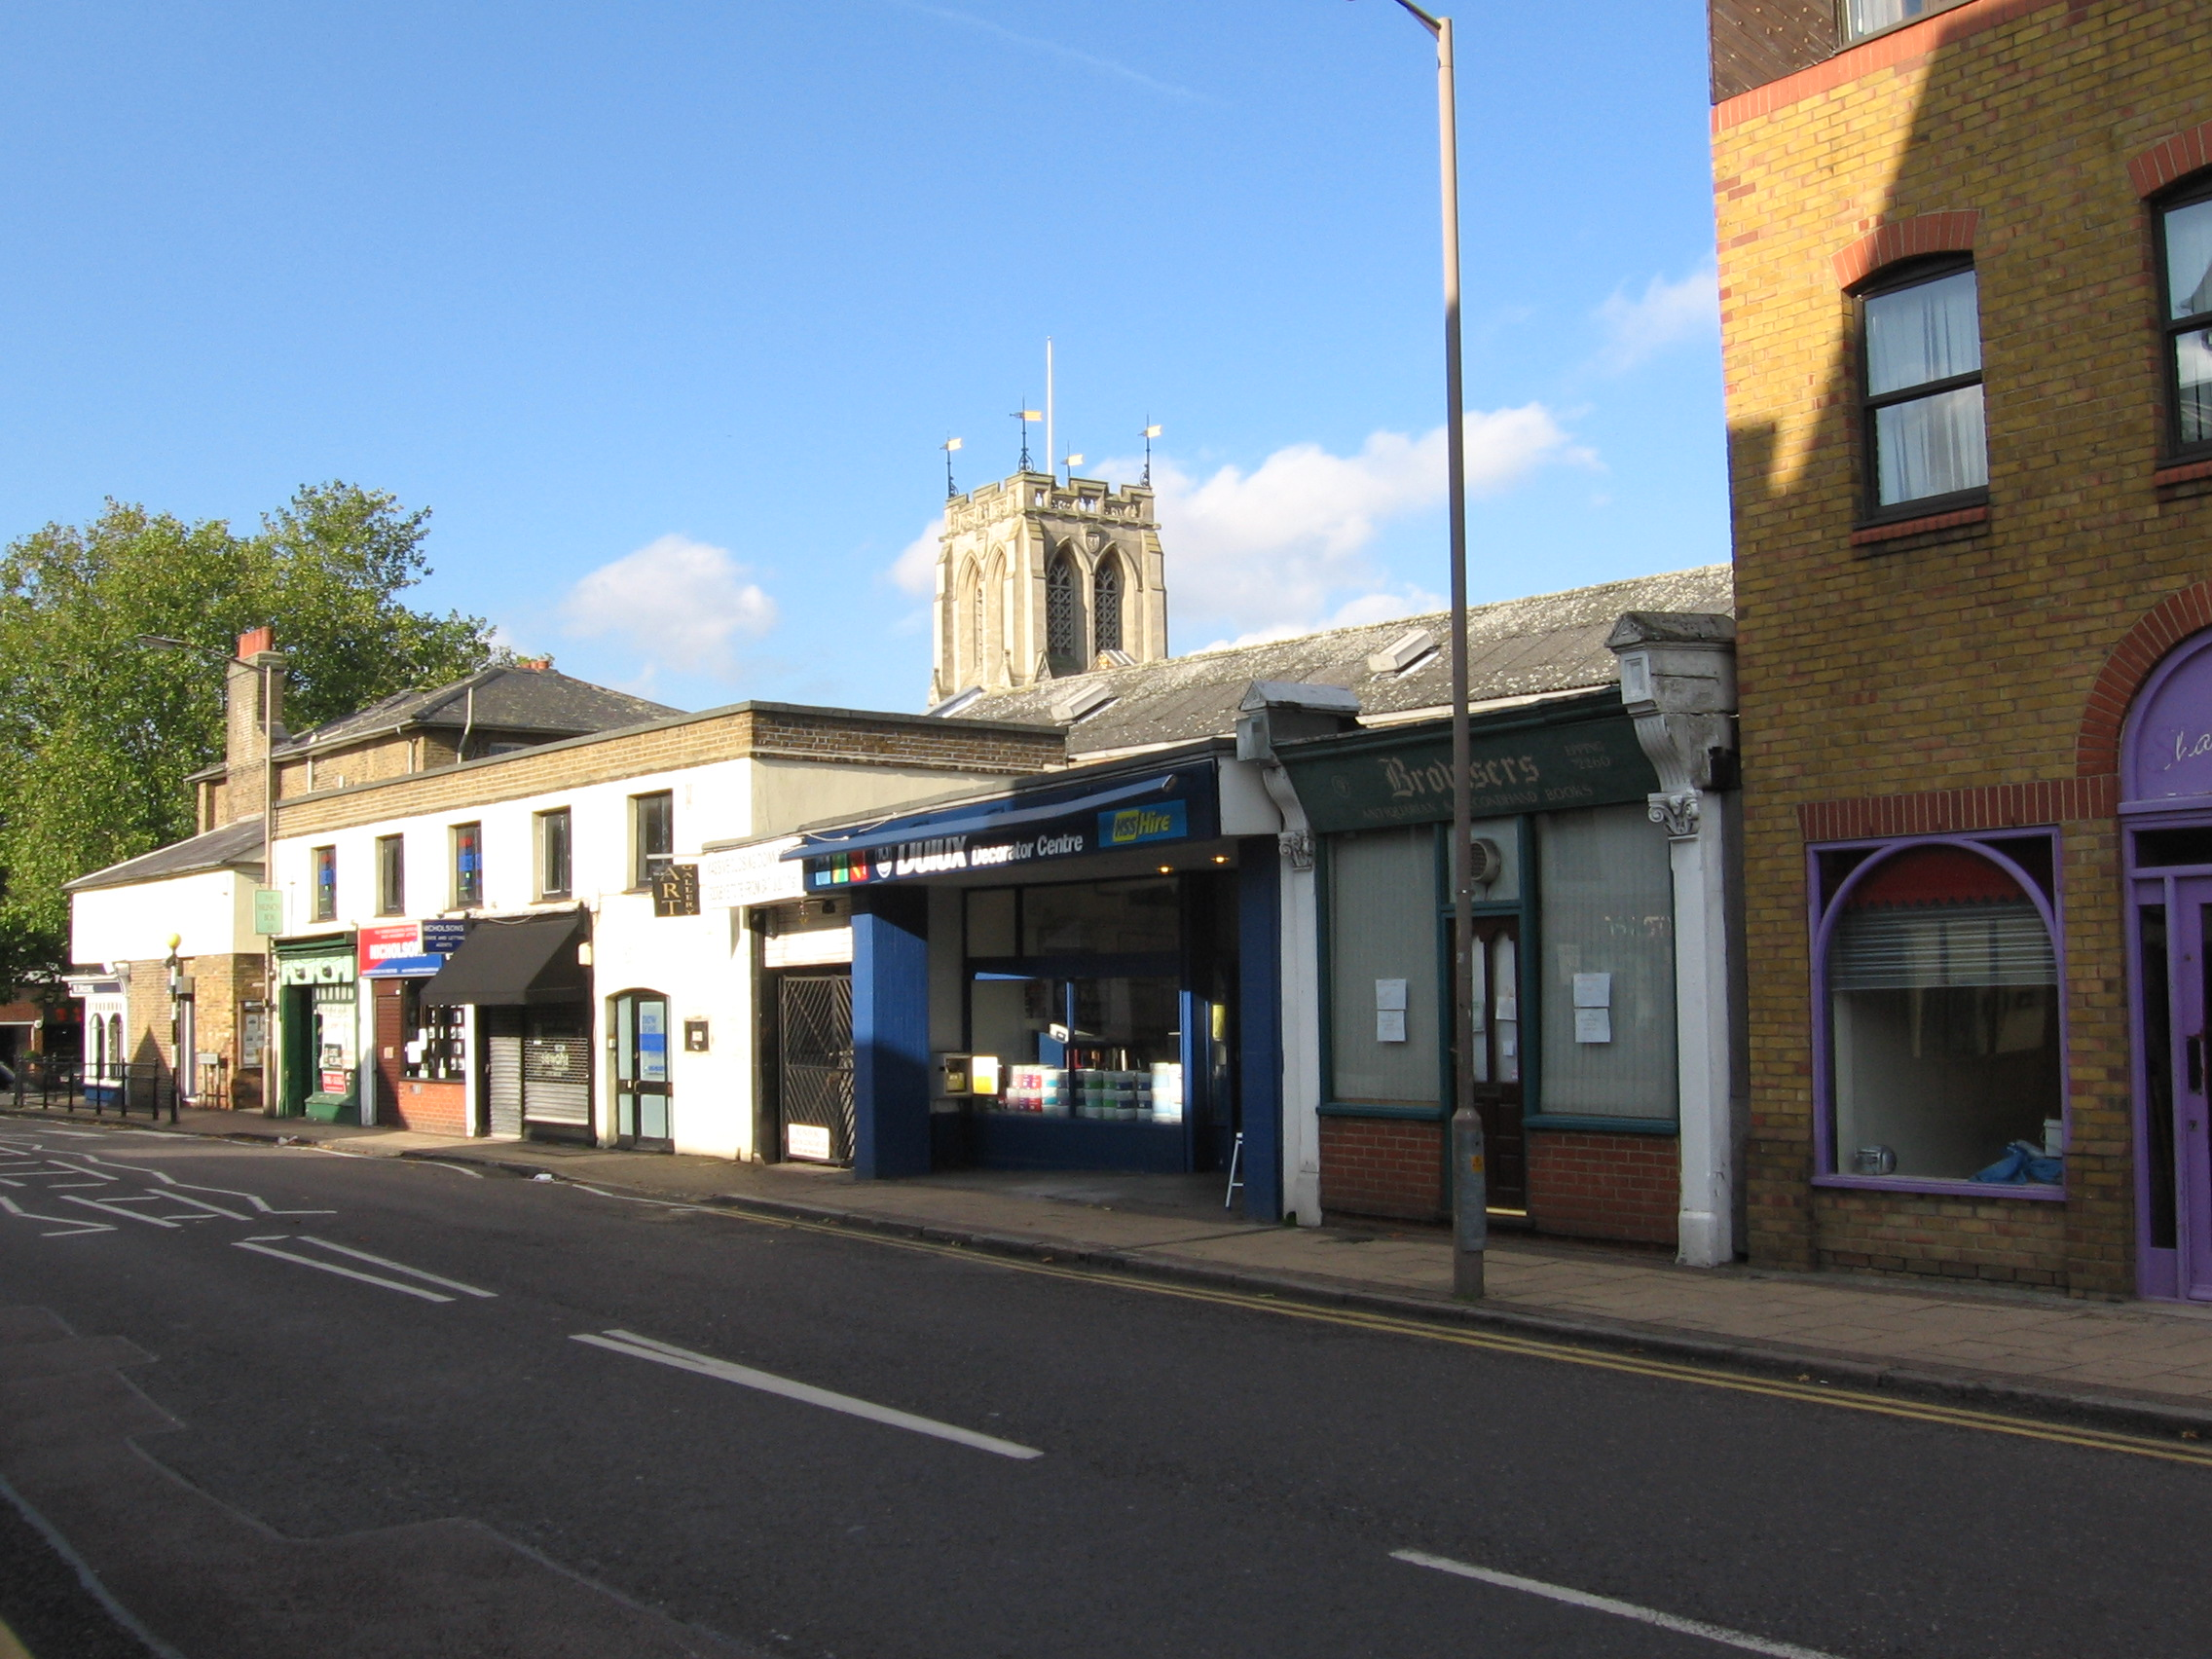 Station Road, Epping before Flacks Mews was built in 2007